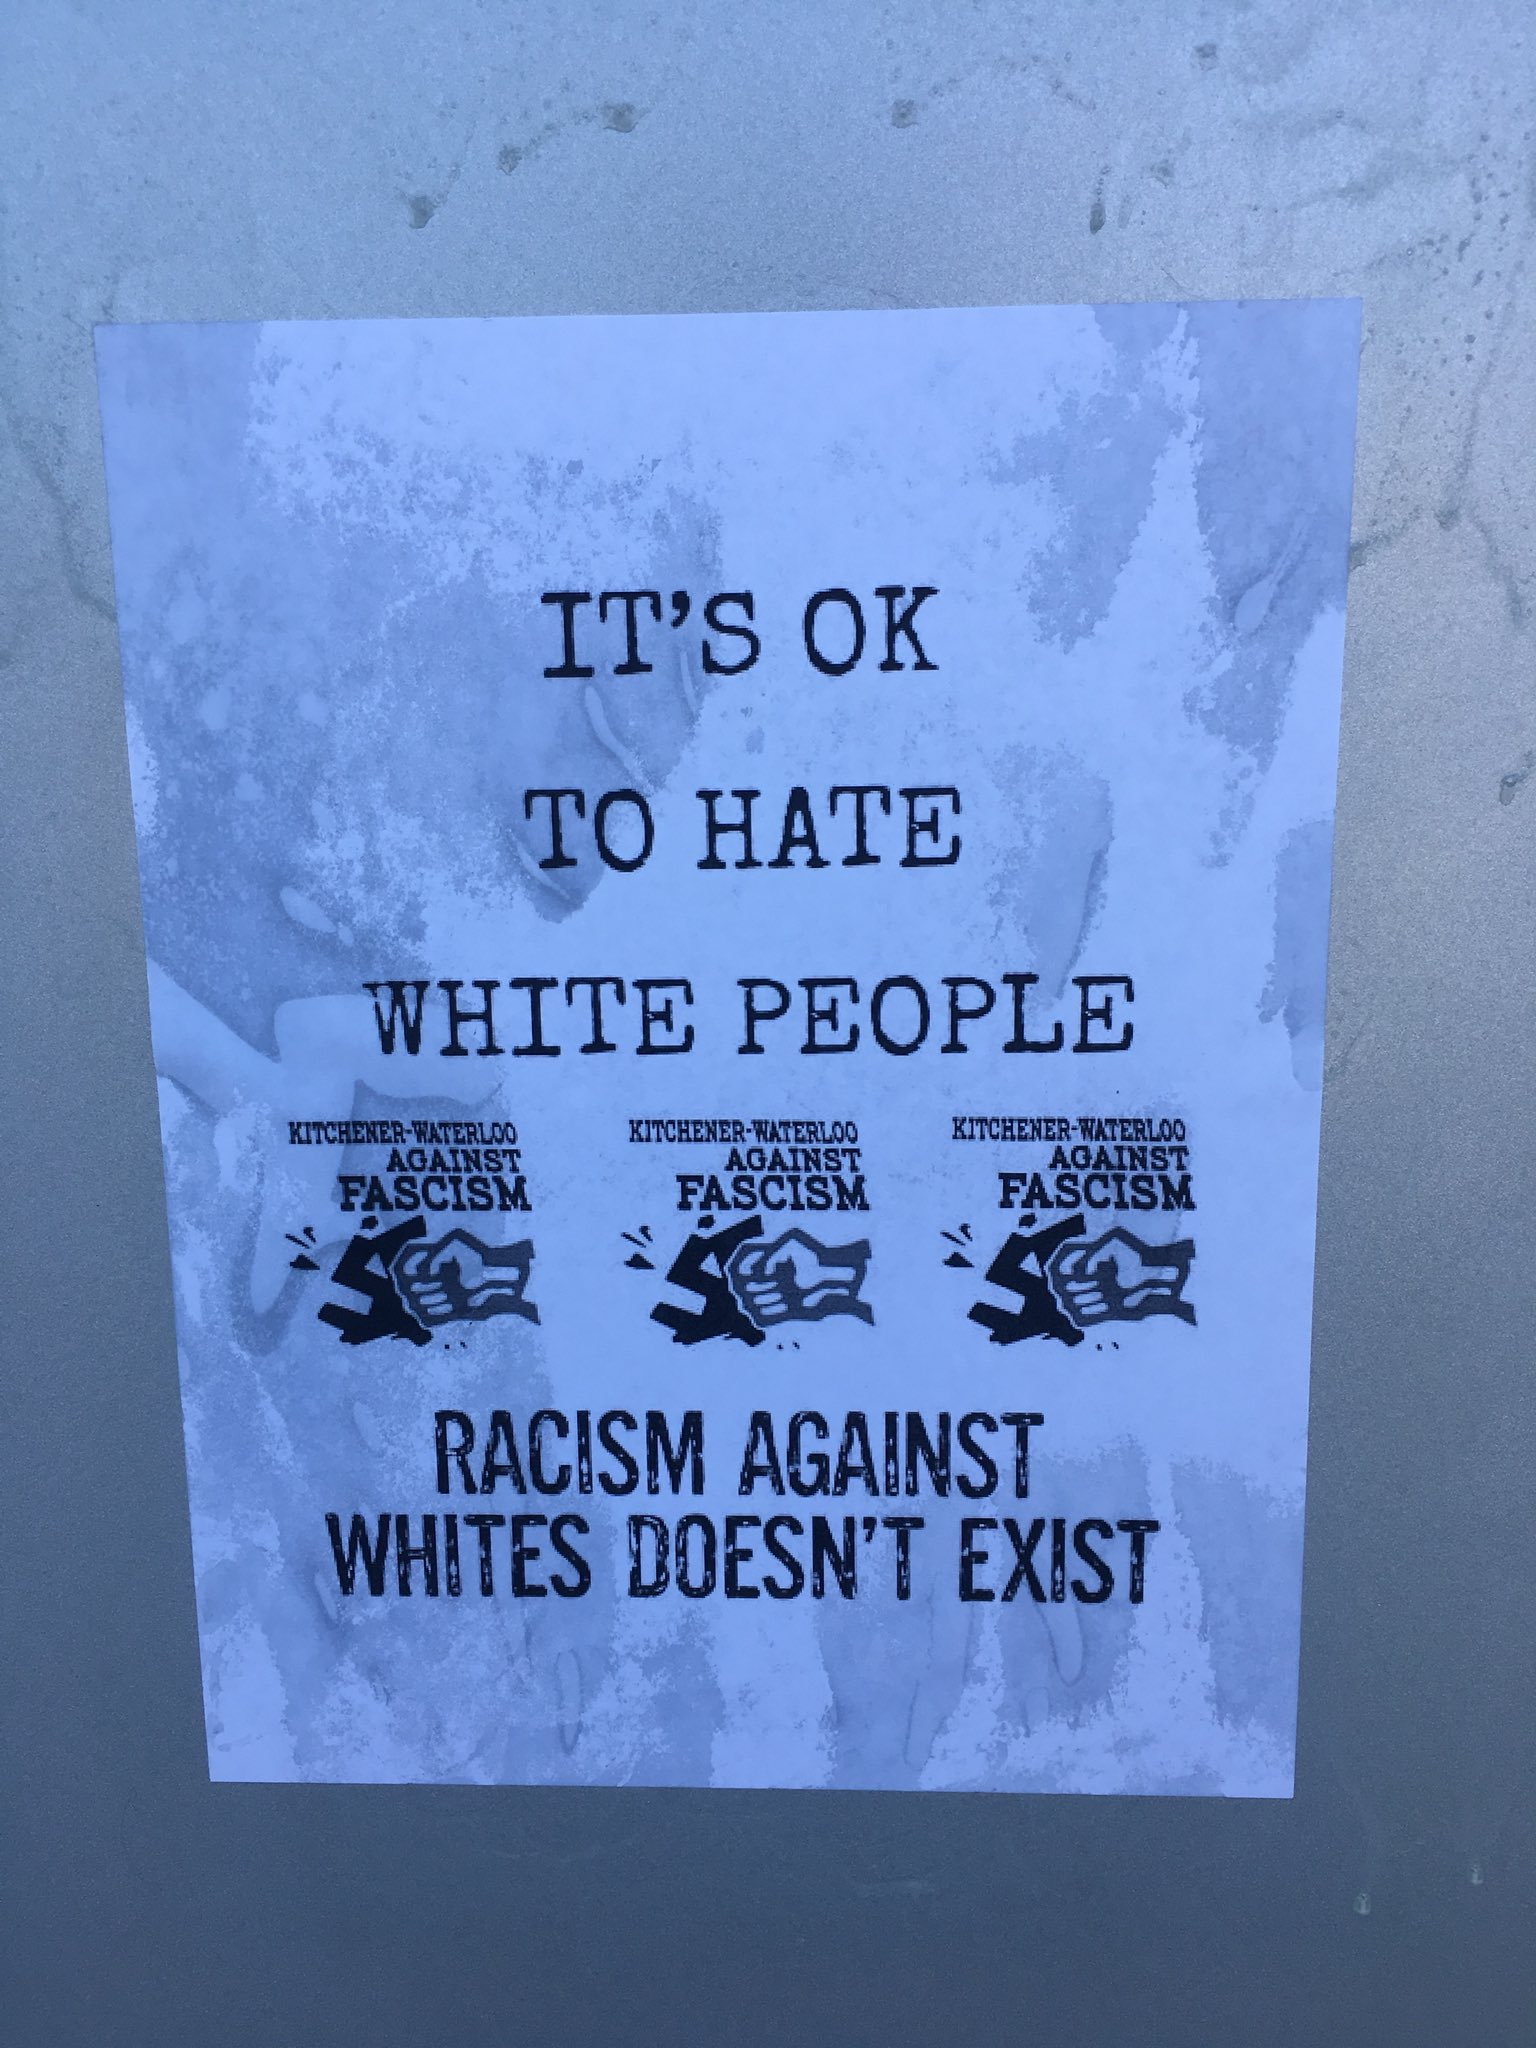 'White lives don't matter' signs appear in Ontario, antifascist group denies wrongdoing